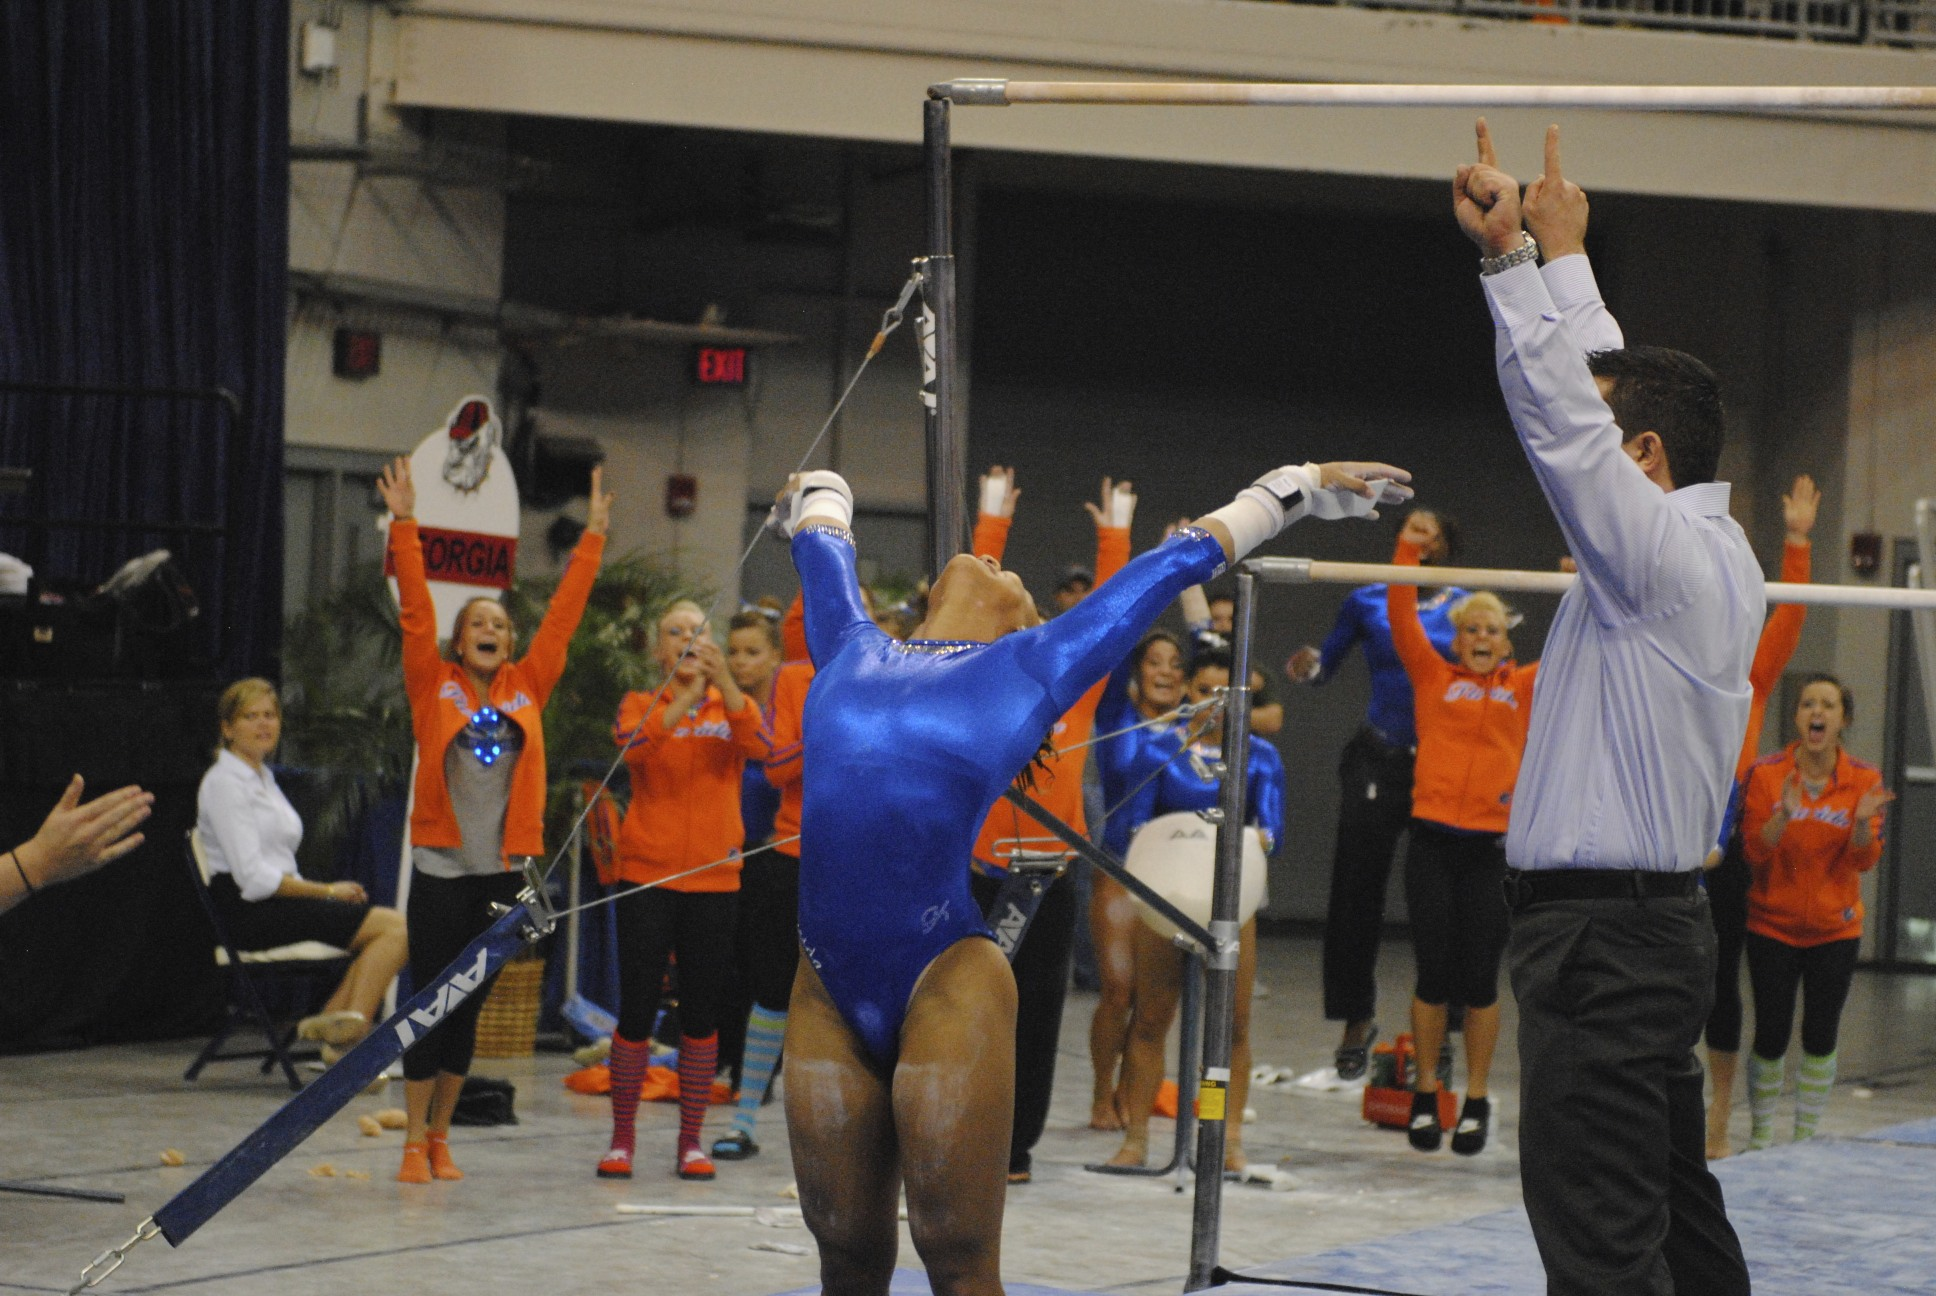 Freshman Kytra Hunter stuck her landing for a score of 9.85.